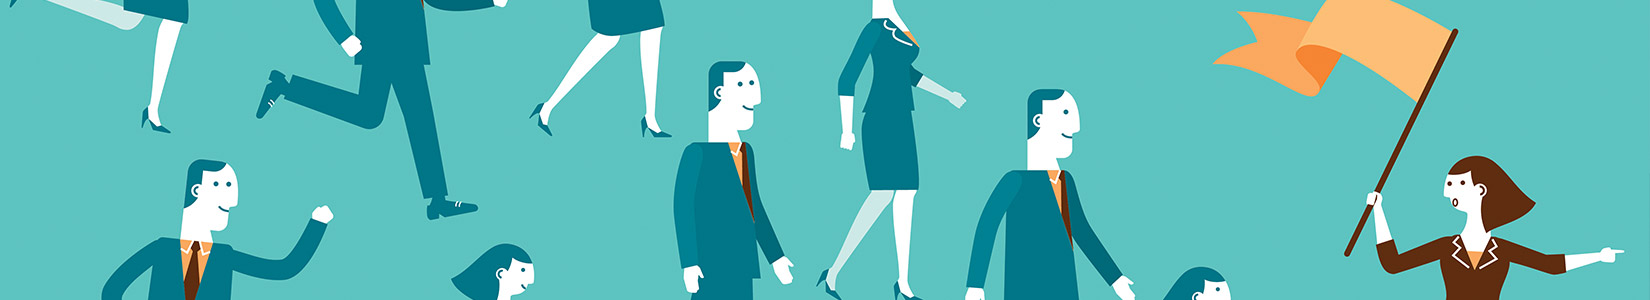 Illustration of HR employer of record team leader with employees following